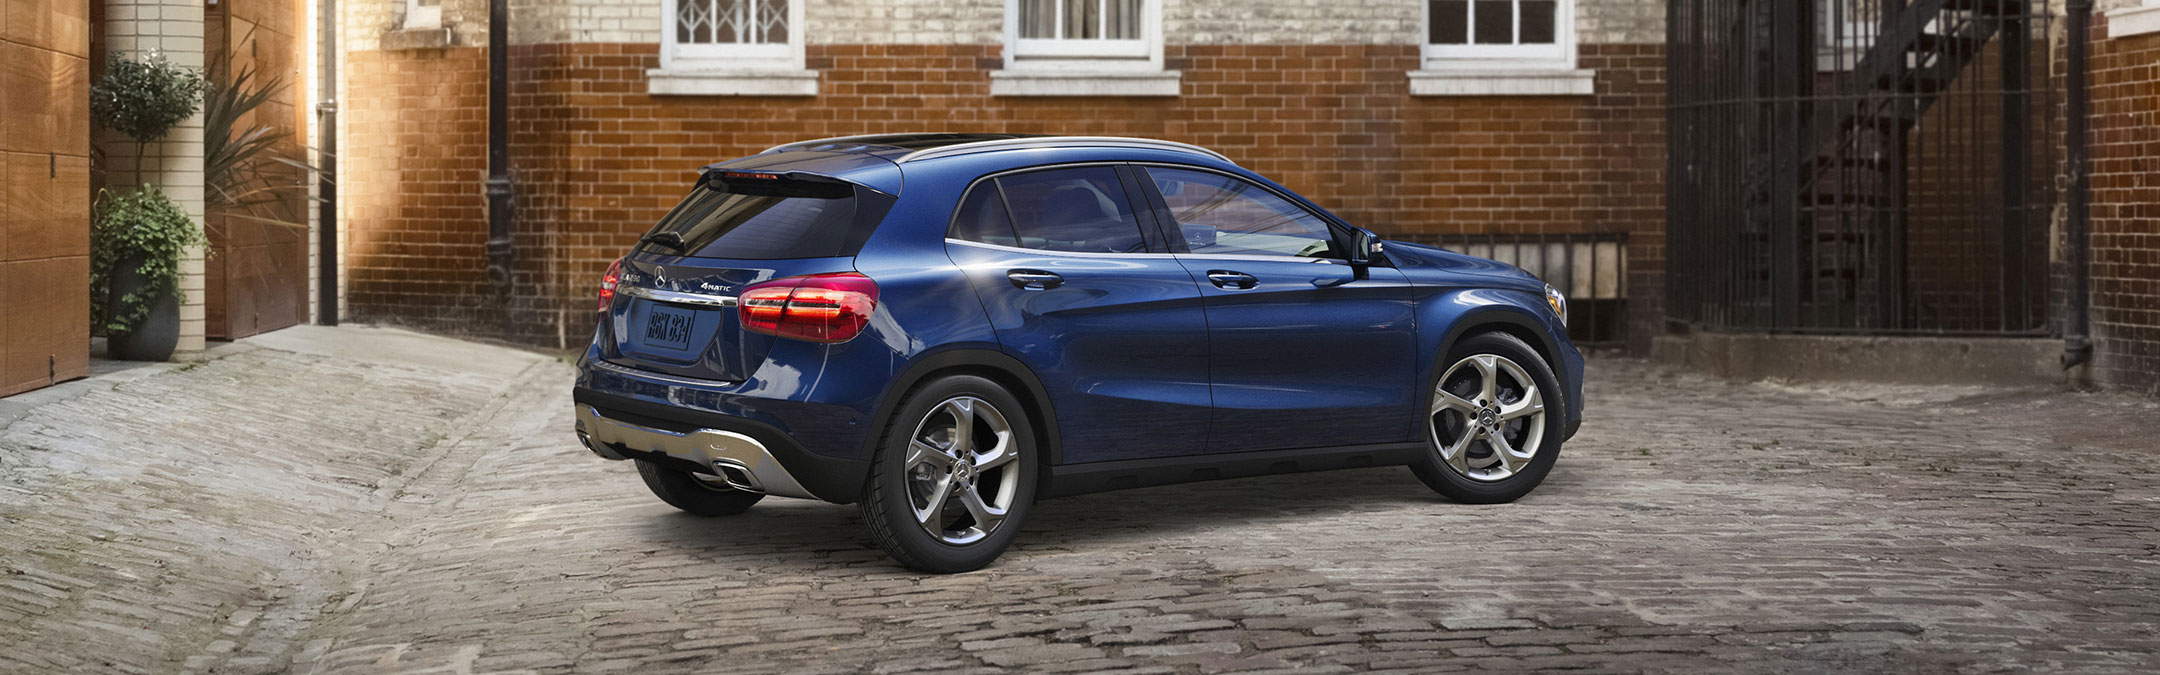 2018 GLA SUV Performance